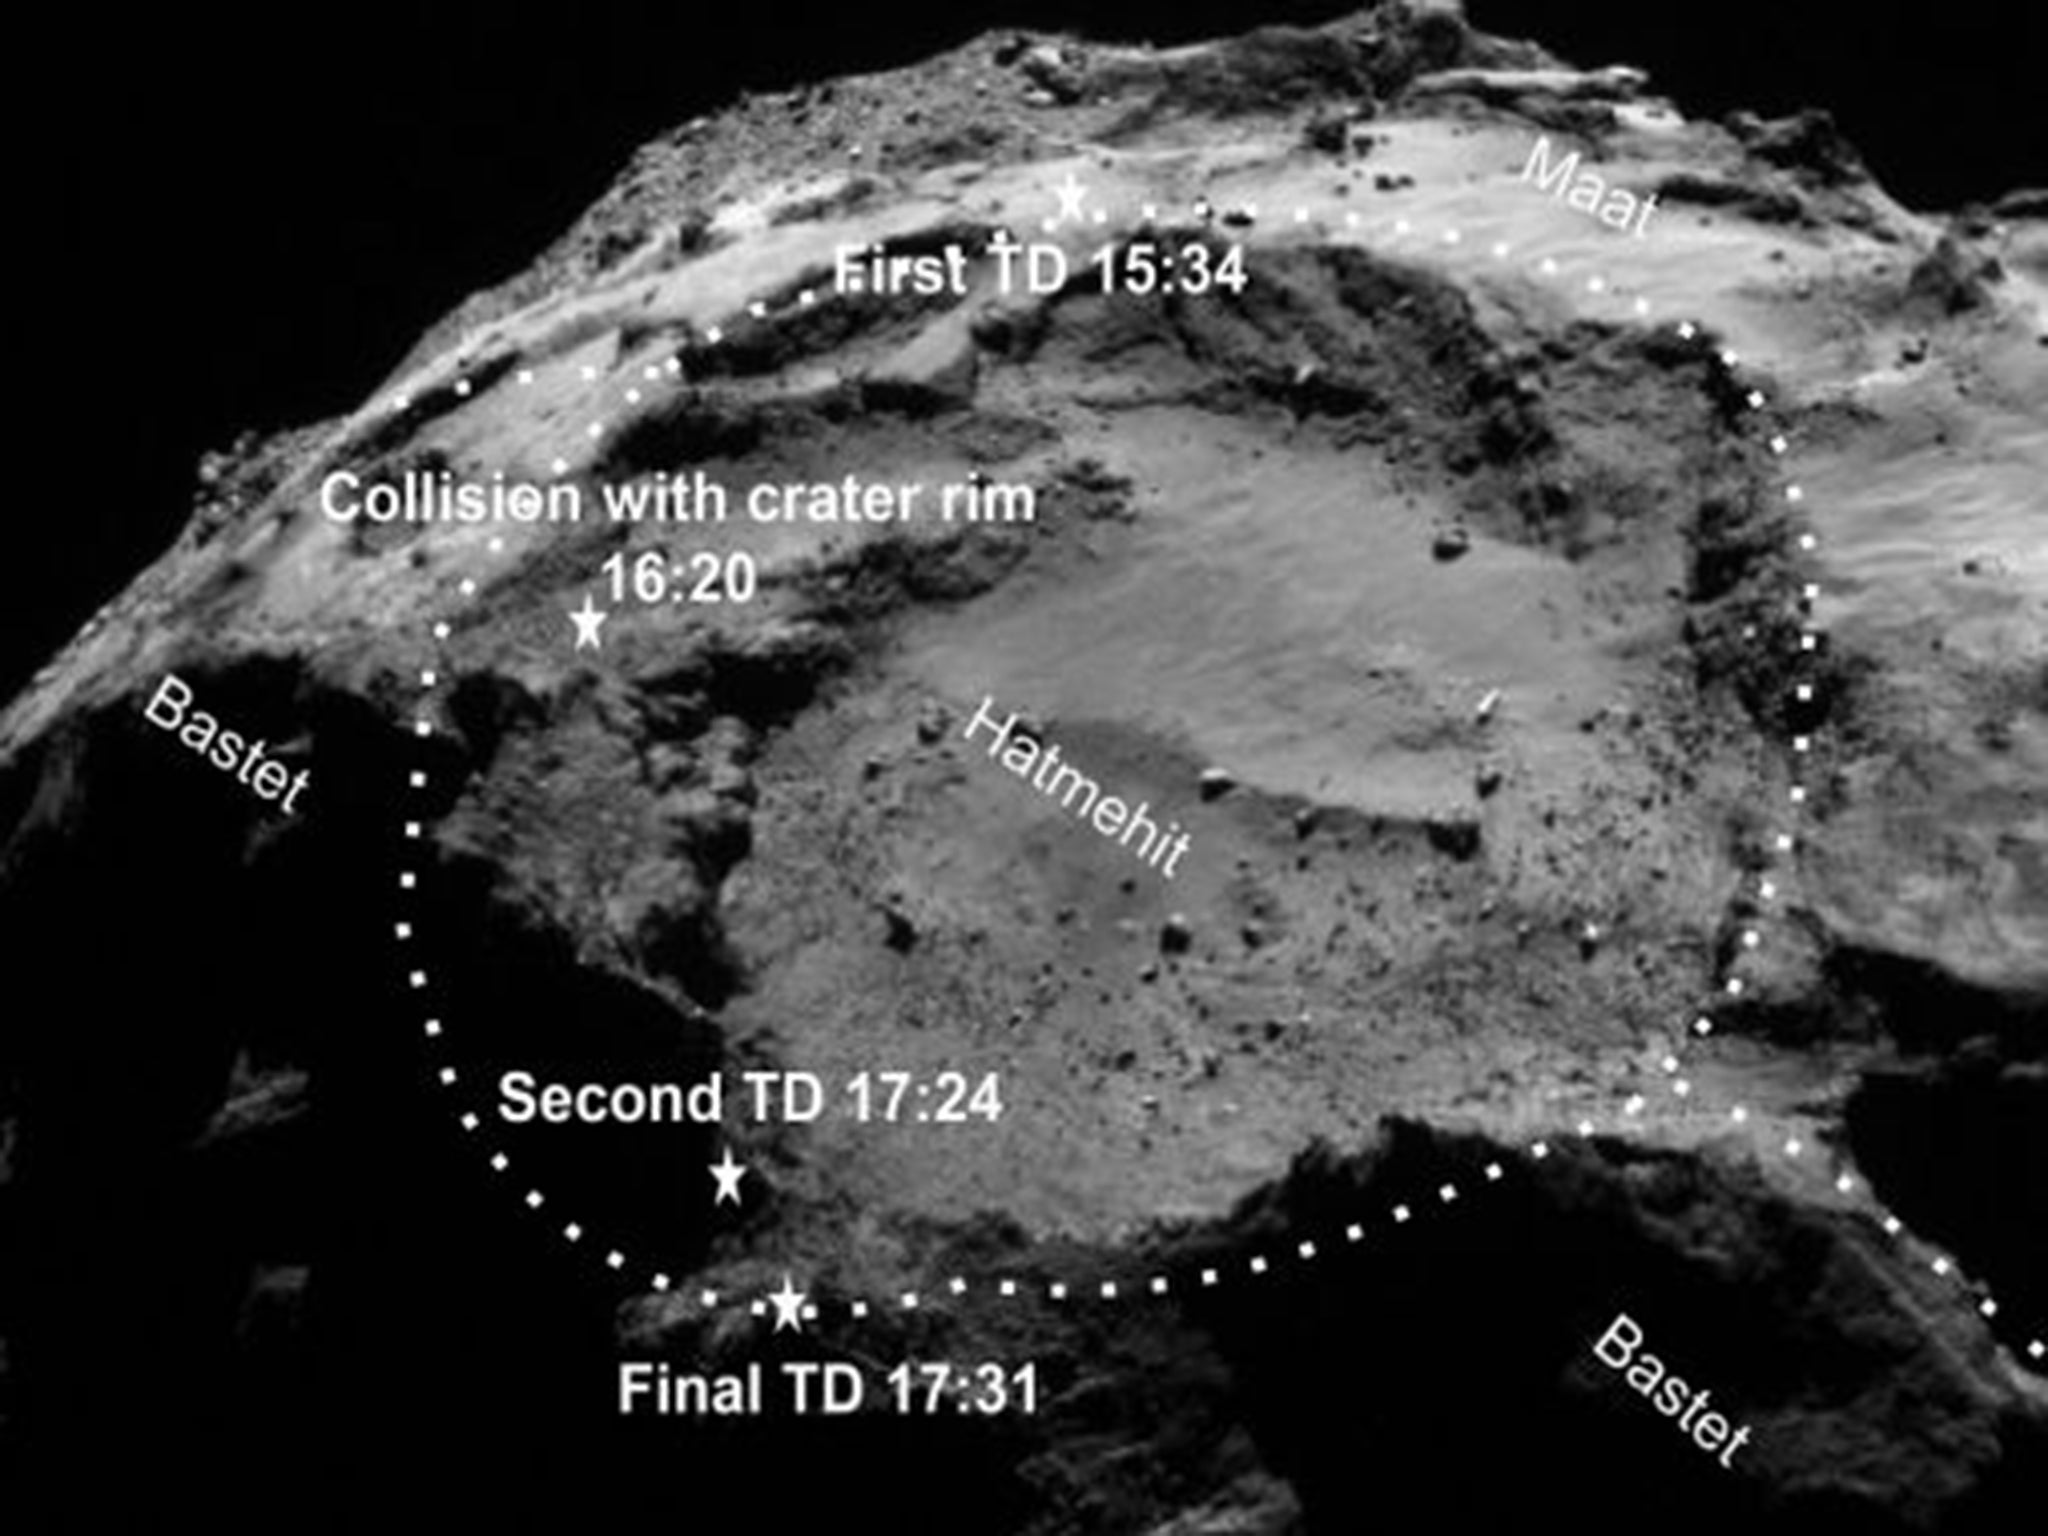 Philae lander data show comets could have brought 'building blocks of life' to Earth